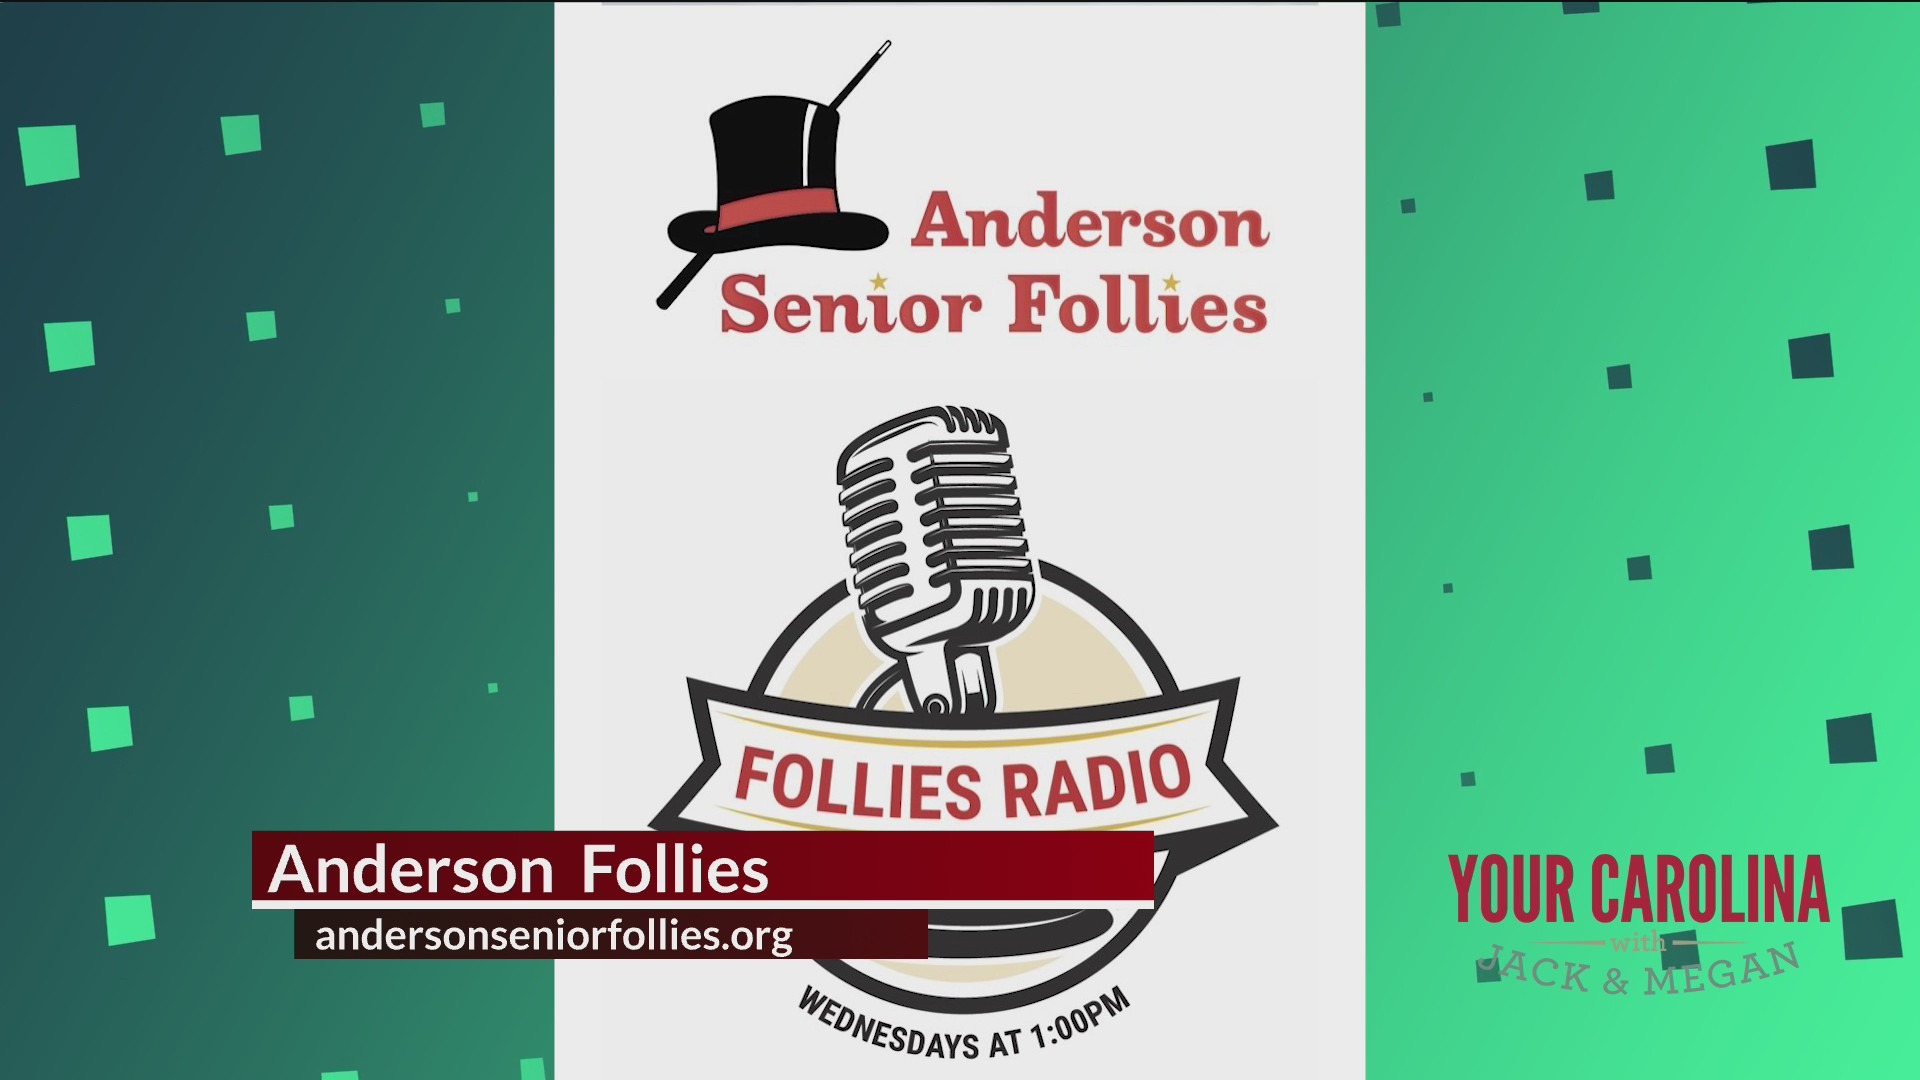 Anderson Senior Follies New Radio Show